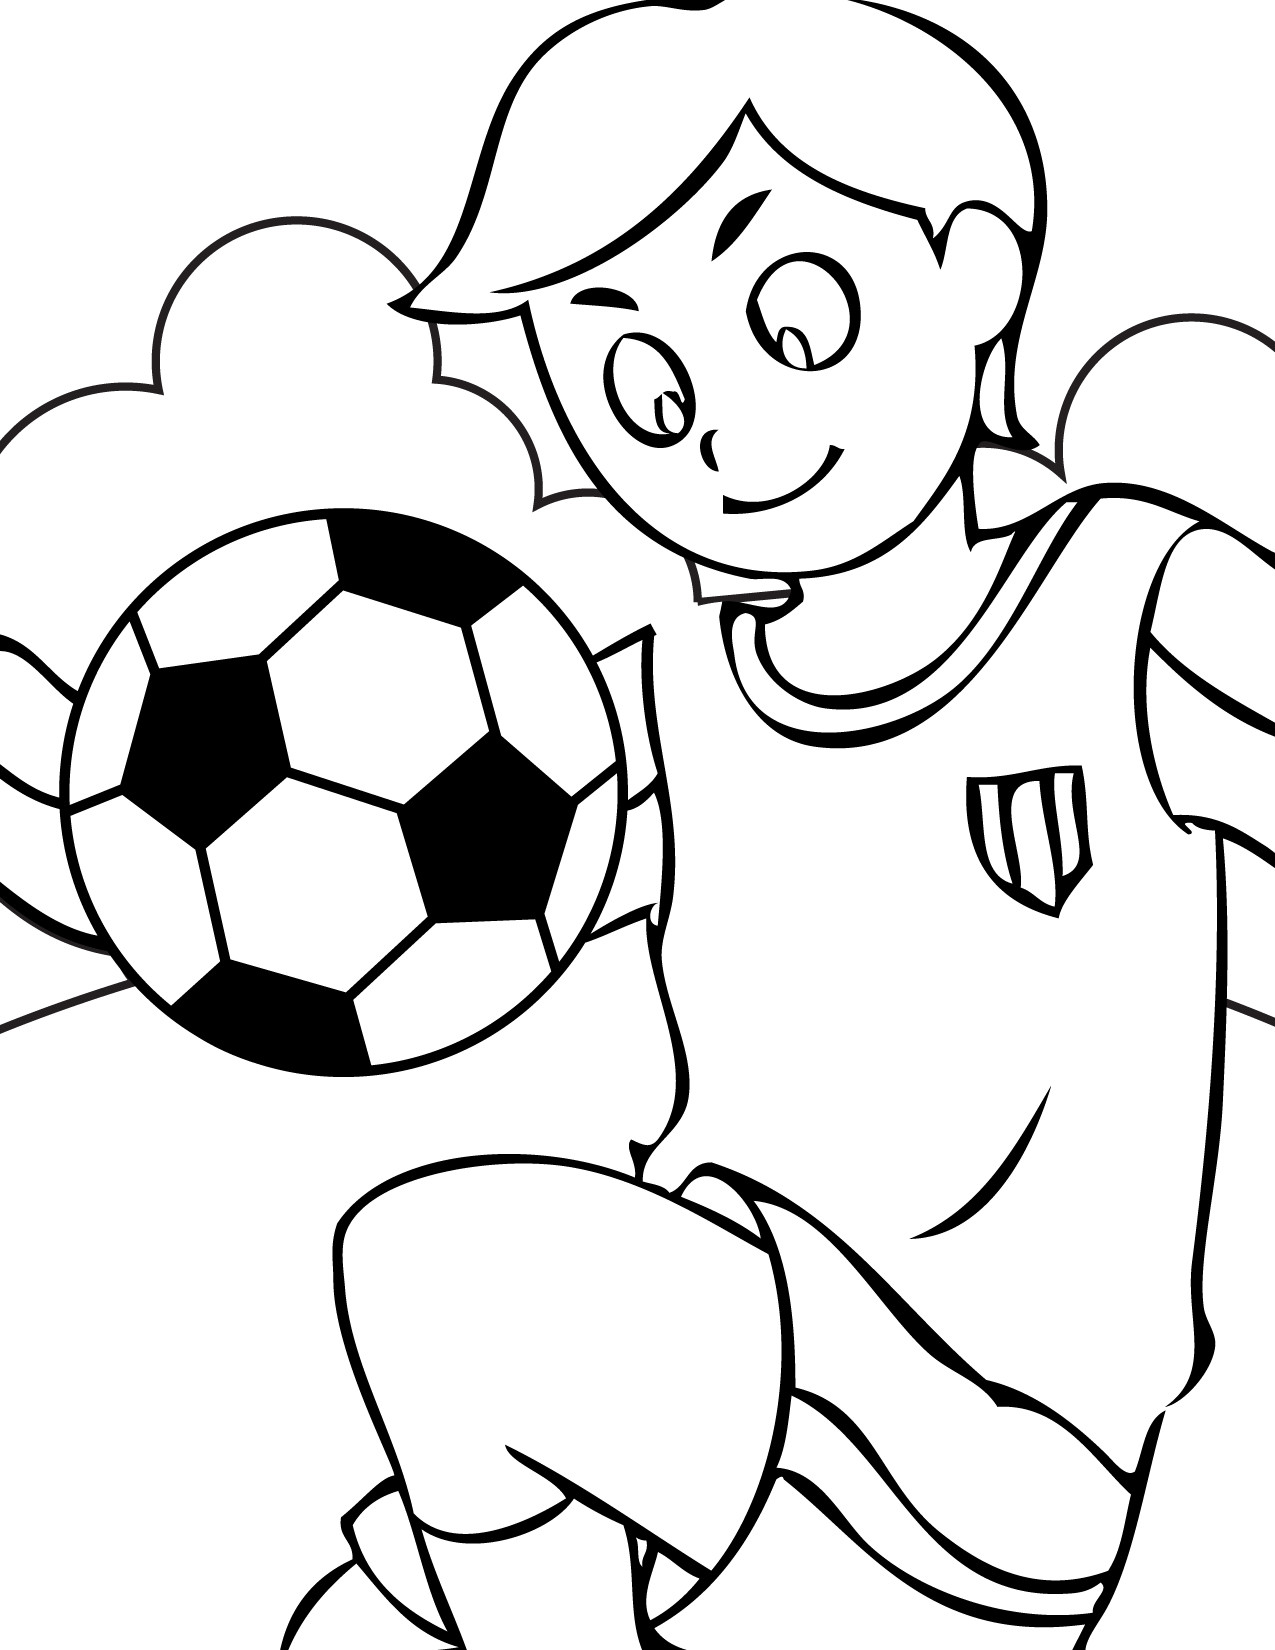 Best ideas about Sports Coloring Pages For Girls . Save or Pin Free Printable Sports Coloring Pages For Kids Now.